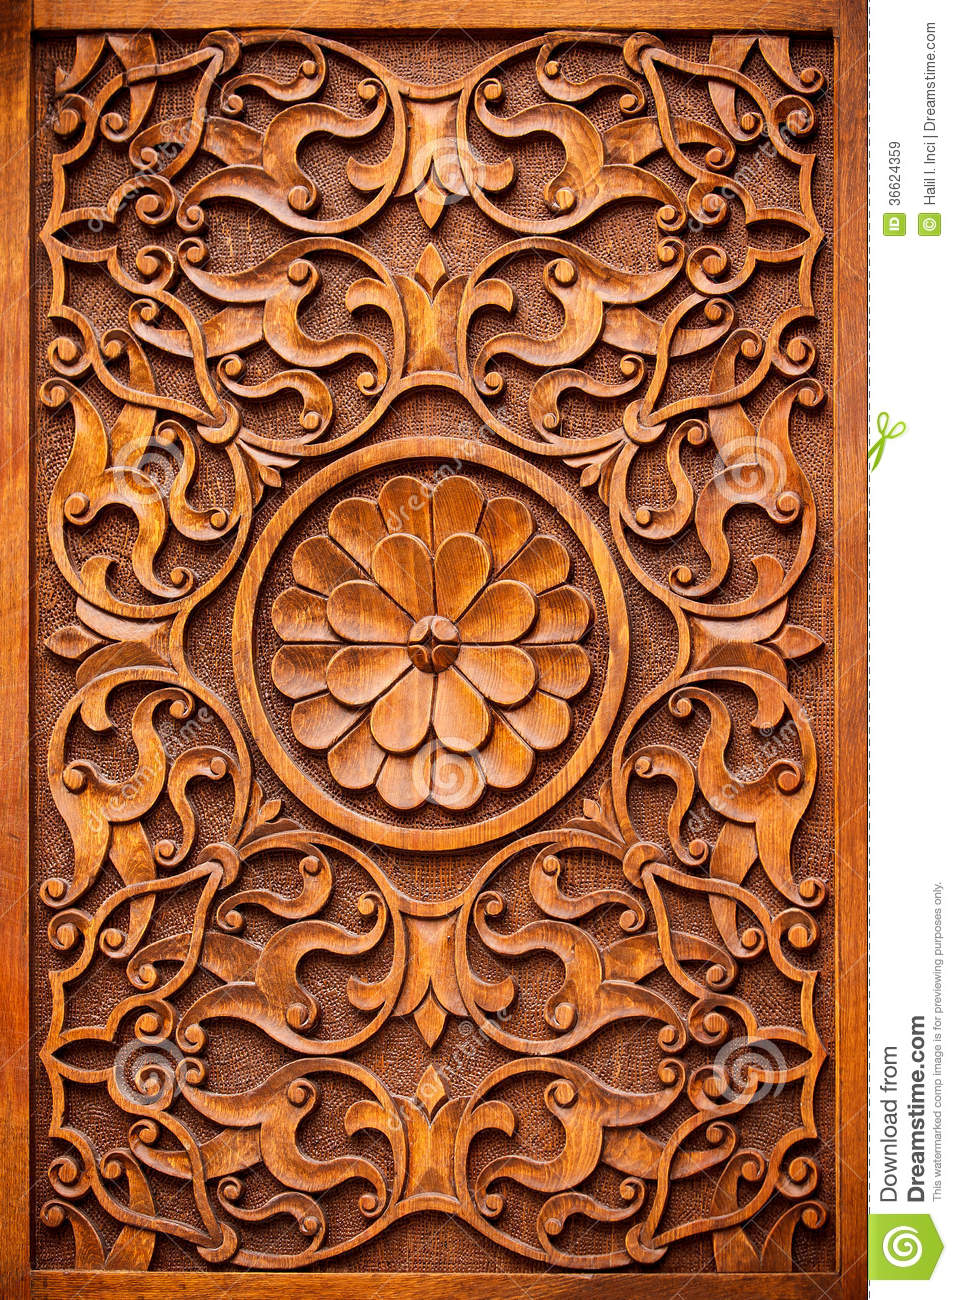 Carving wood royalty free stock images image 36624359 for Wood carving doors hd images